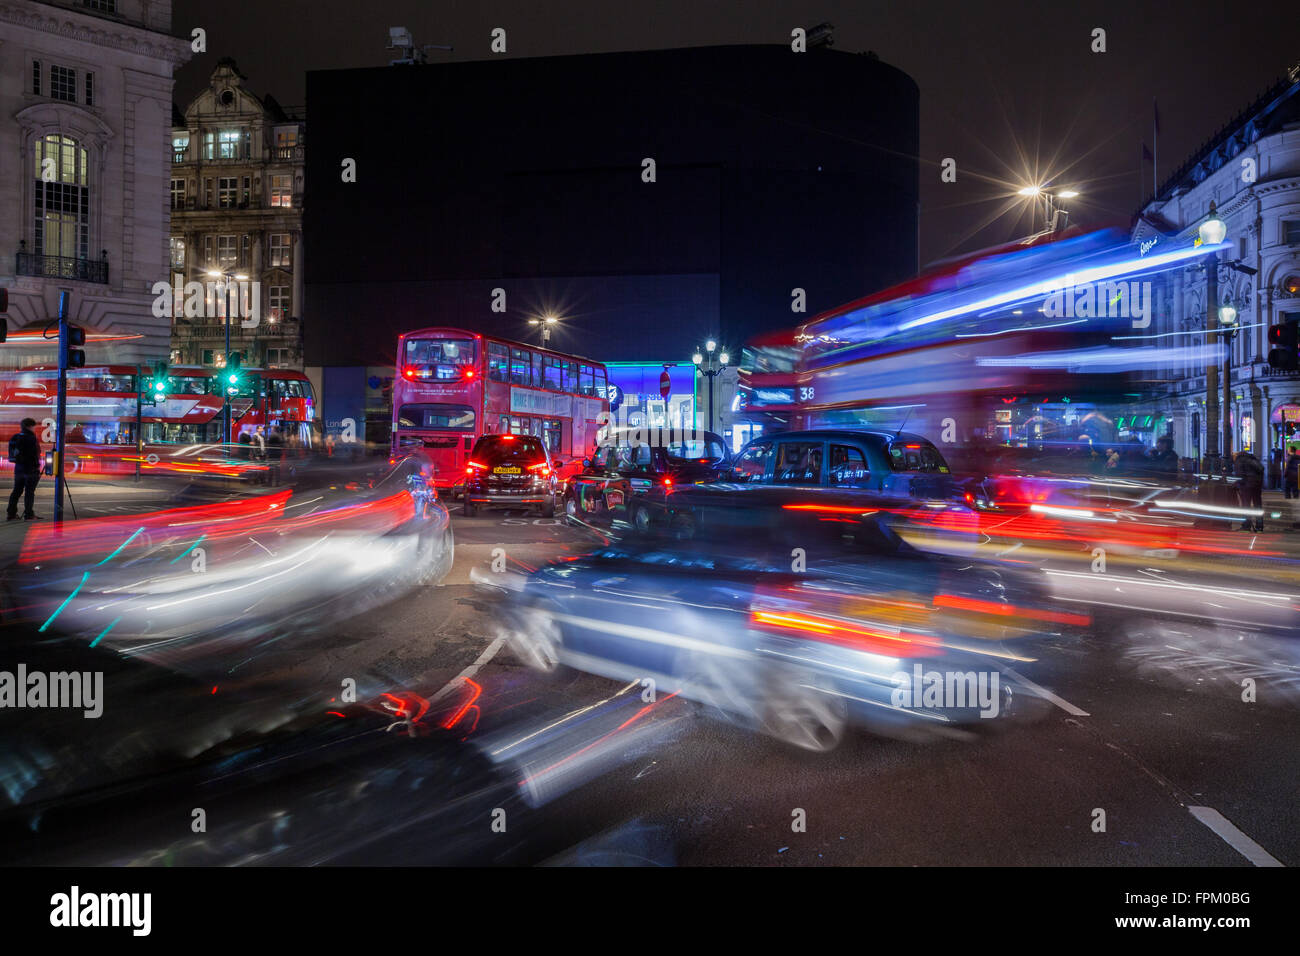 London, UK. 19th Mar, 2016. This saturday, March 19th, at 8:30 PM, for the Earth Hour, the lights went off for 1 - Stock Image